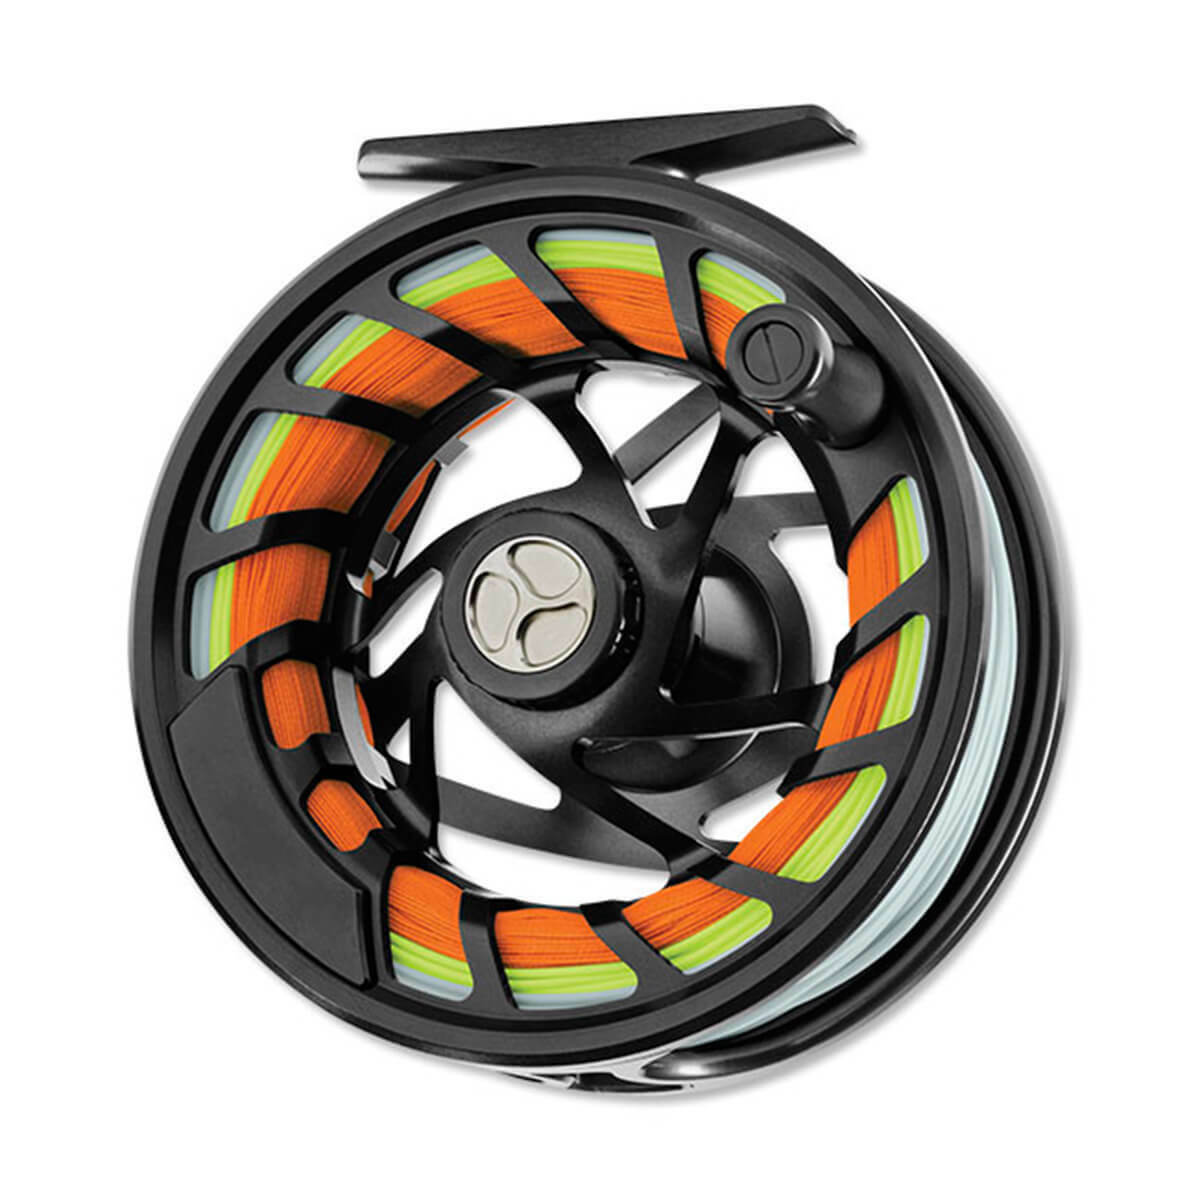 Orvis Mirage II Large Arbor Fly Reel - Midnight - NEW - FREE DOMESTIC SHIPPING